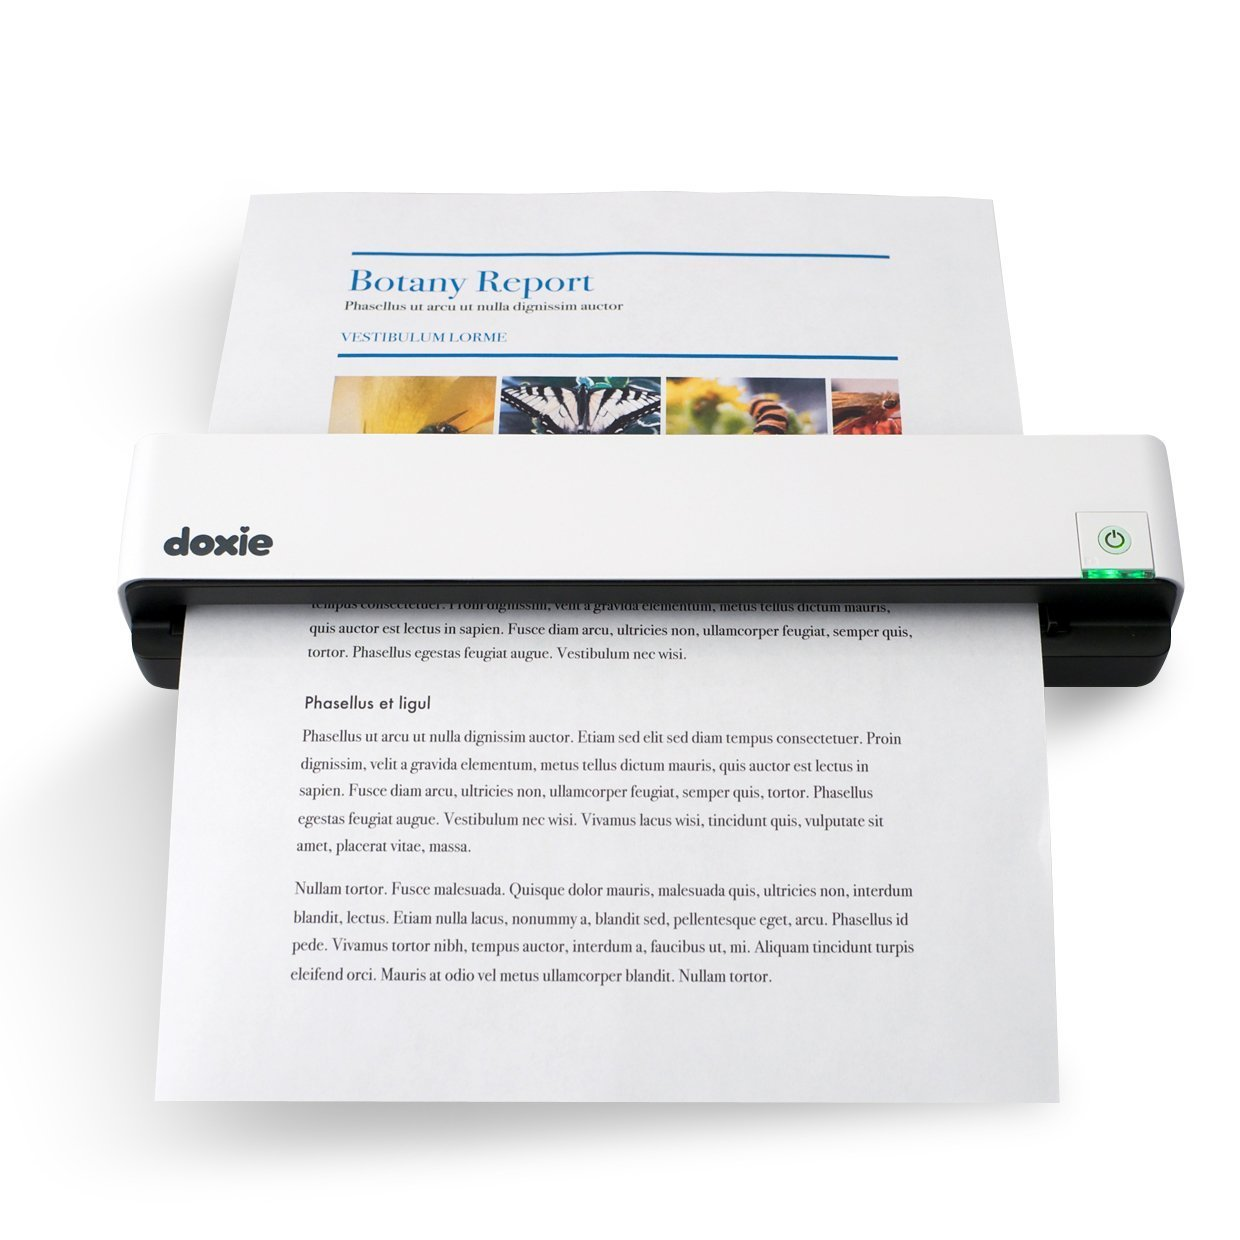 amazoncom doxie go mobile document scanner flatbed scanners electronics